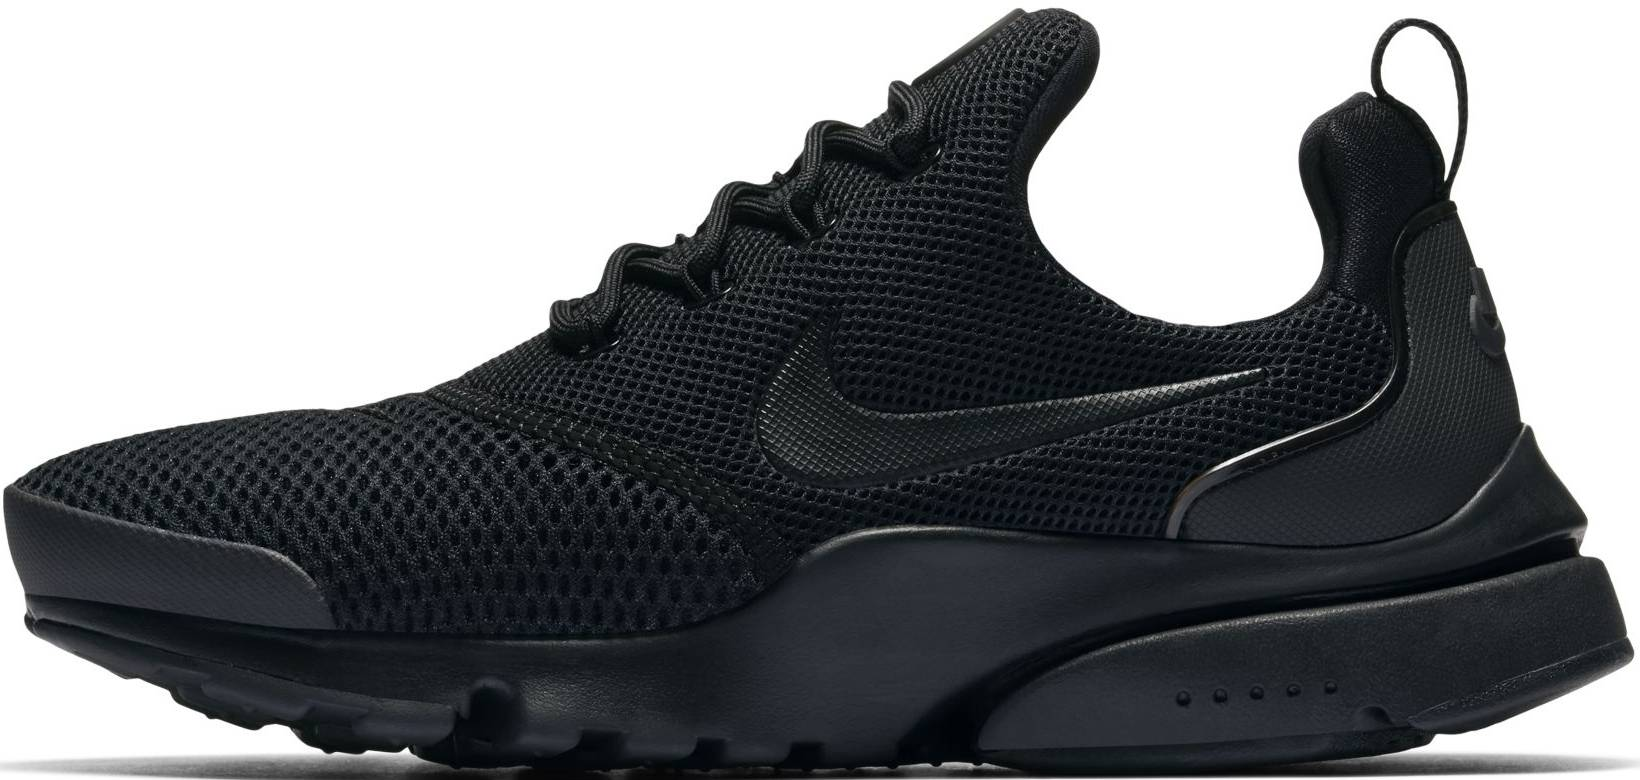 nuez resistirse Quizás  Nike Air Presto Fly sneakers in 4 colors (only $85) | RunRepeat